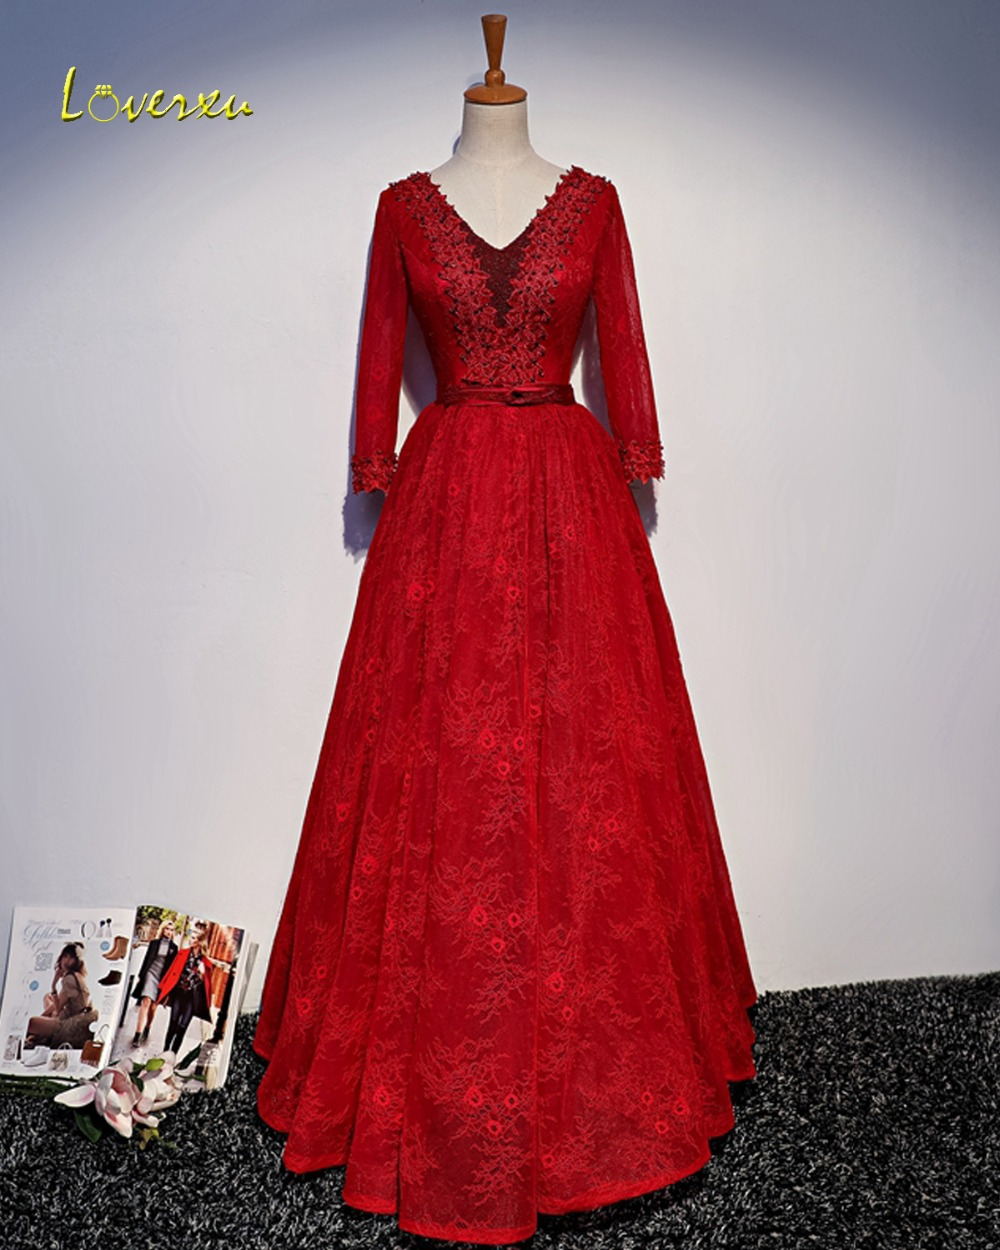 Loverxu Gorgeous Appliques Long Sleeve A-Line Long   Evening     Dress   2019 V-neck Beaded Red Lace Party Gown Robe De Soiree Plus Size